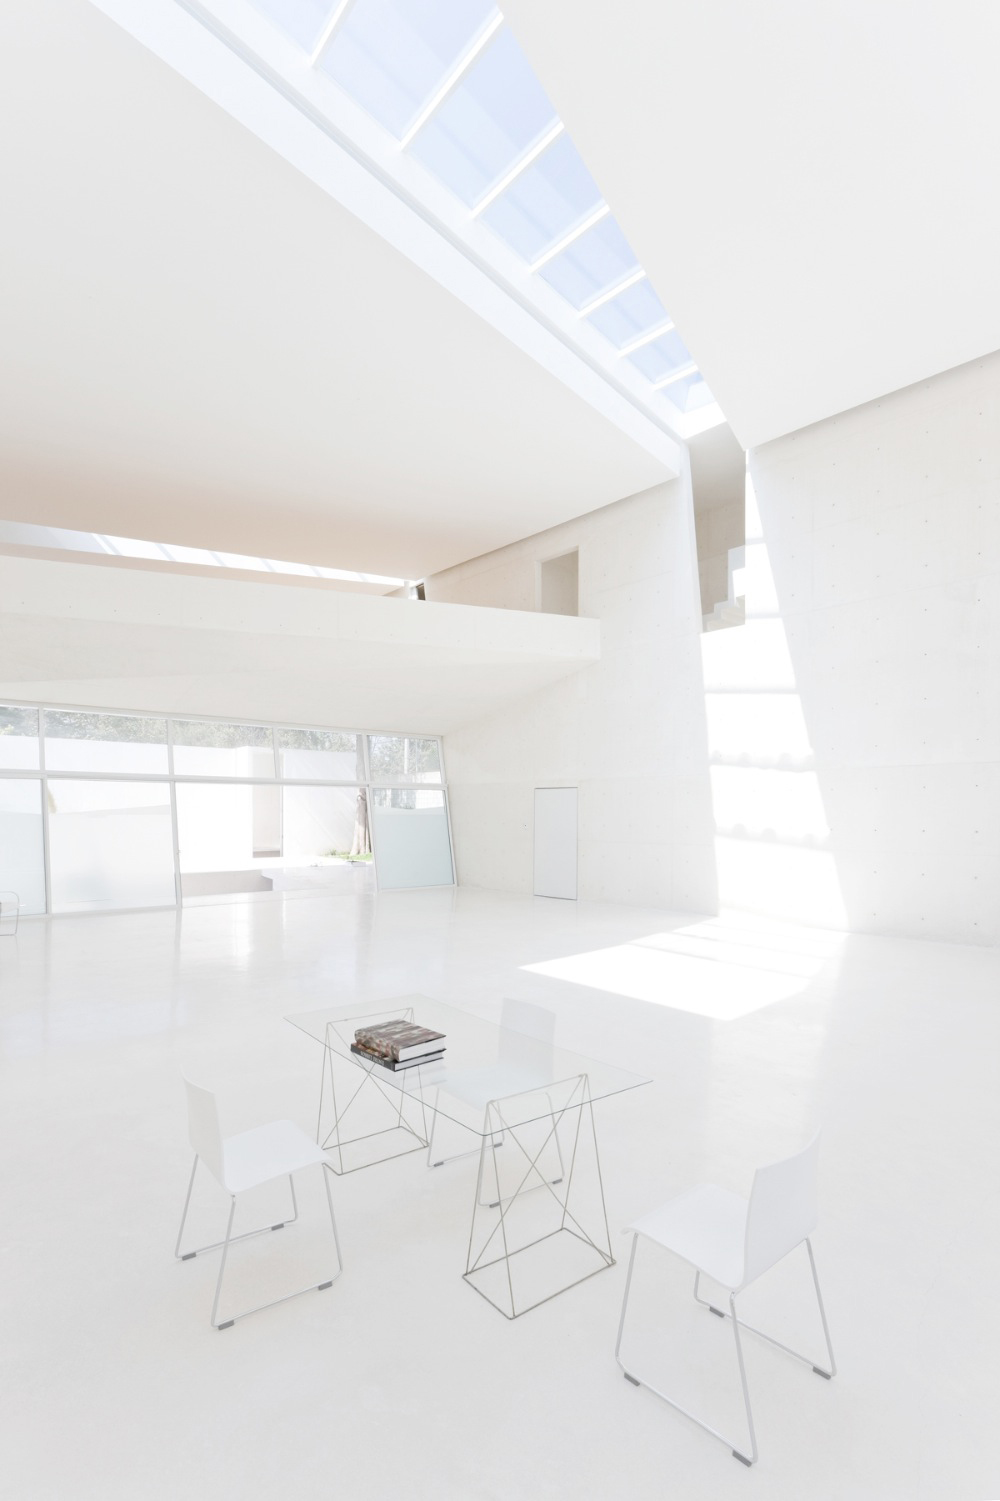 Artists studio by at103 tatiana bilbao your no 1 for Minimal house artists